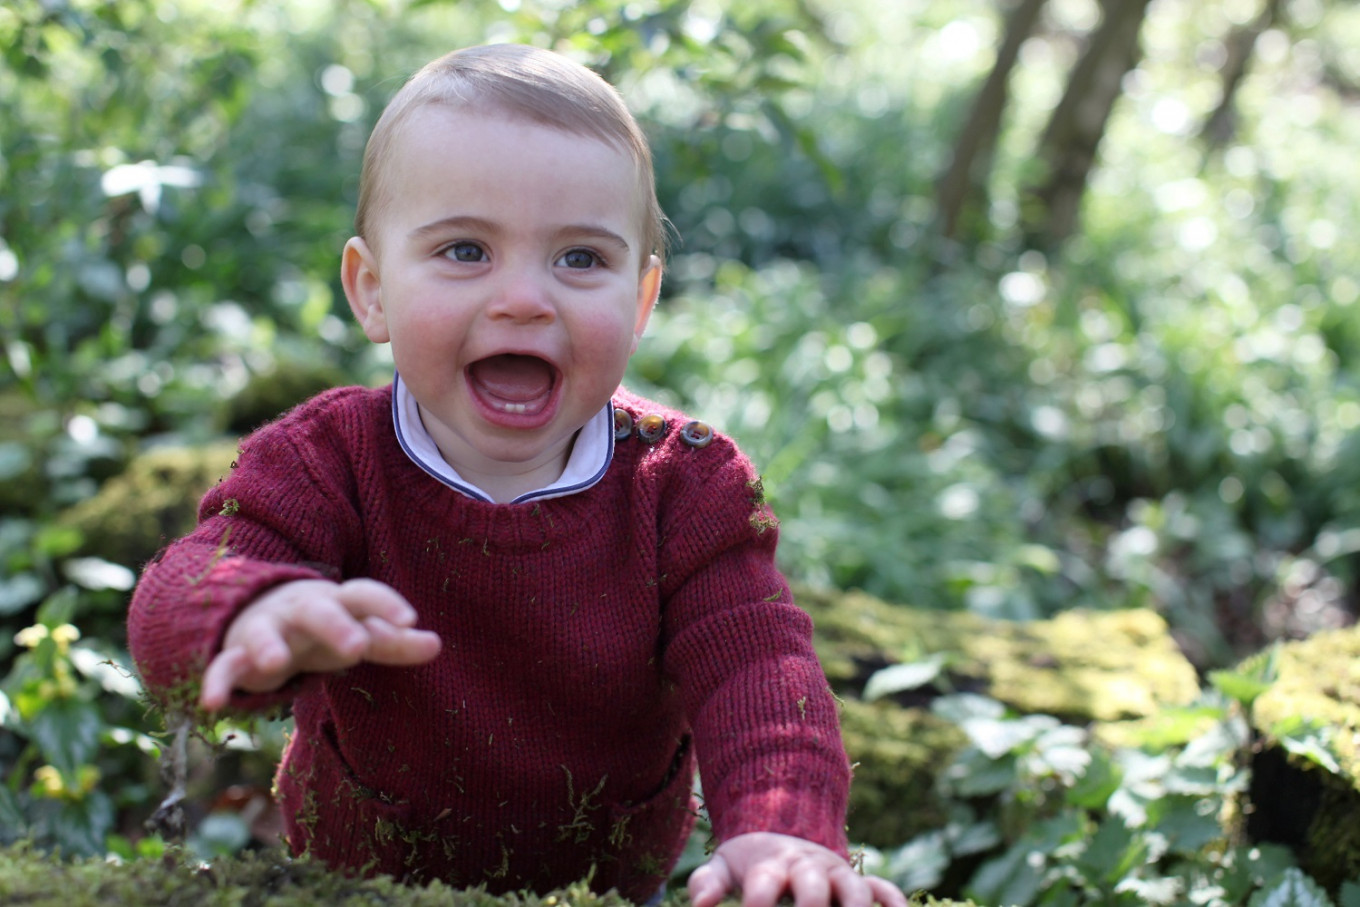 UK royals publish photos of Prince Louis to mark first birthday